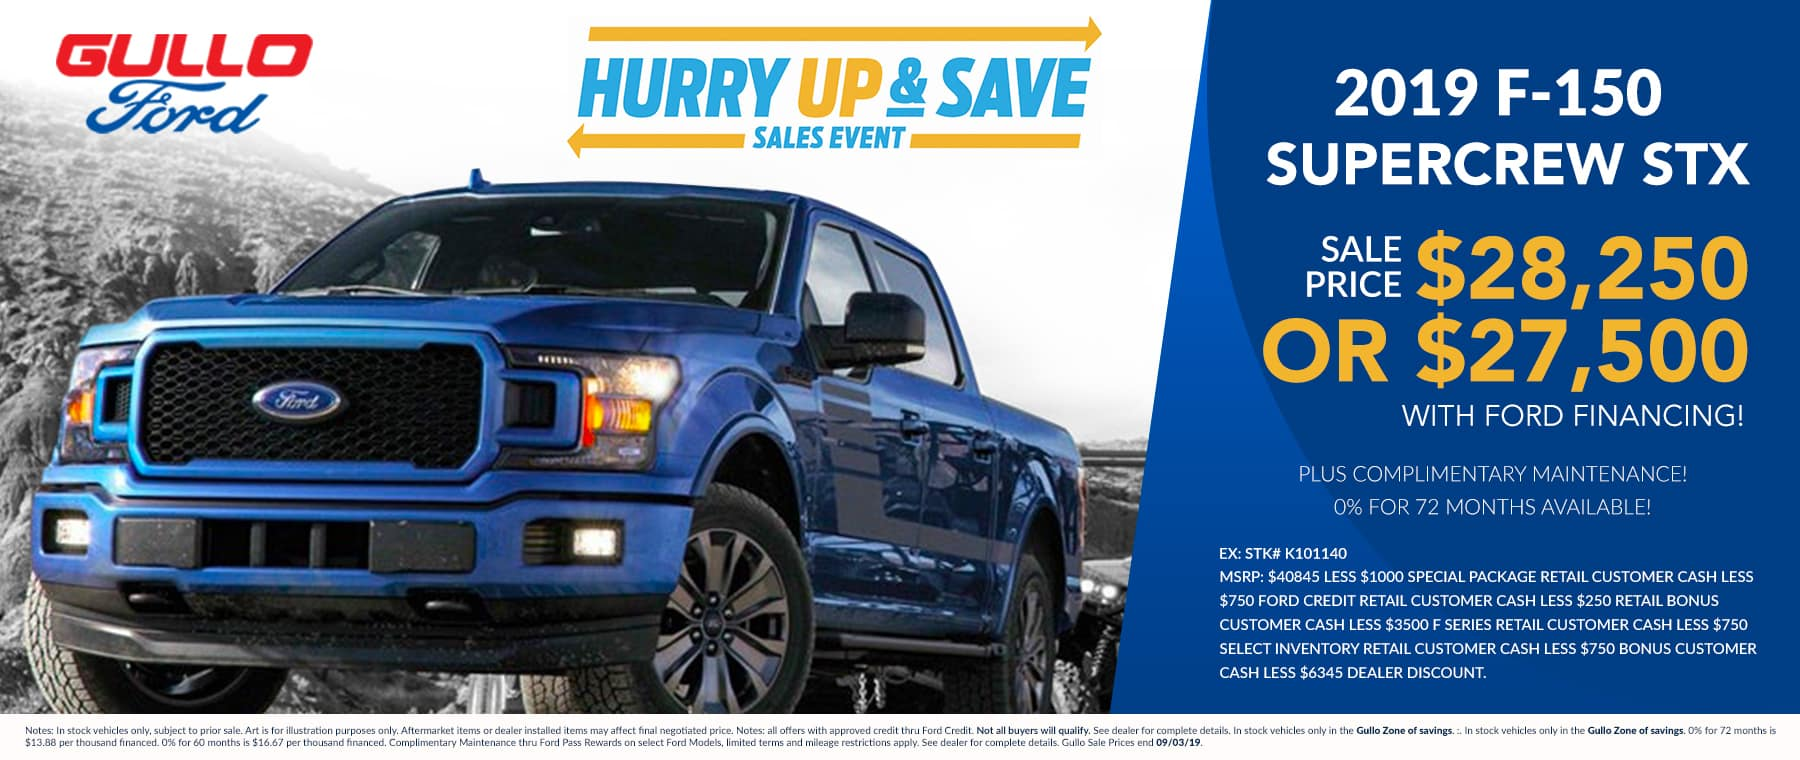 Gullo Ford Conroe Texas >> gullo ford conroe texas – Seven Modified 2019 Ford Rangers